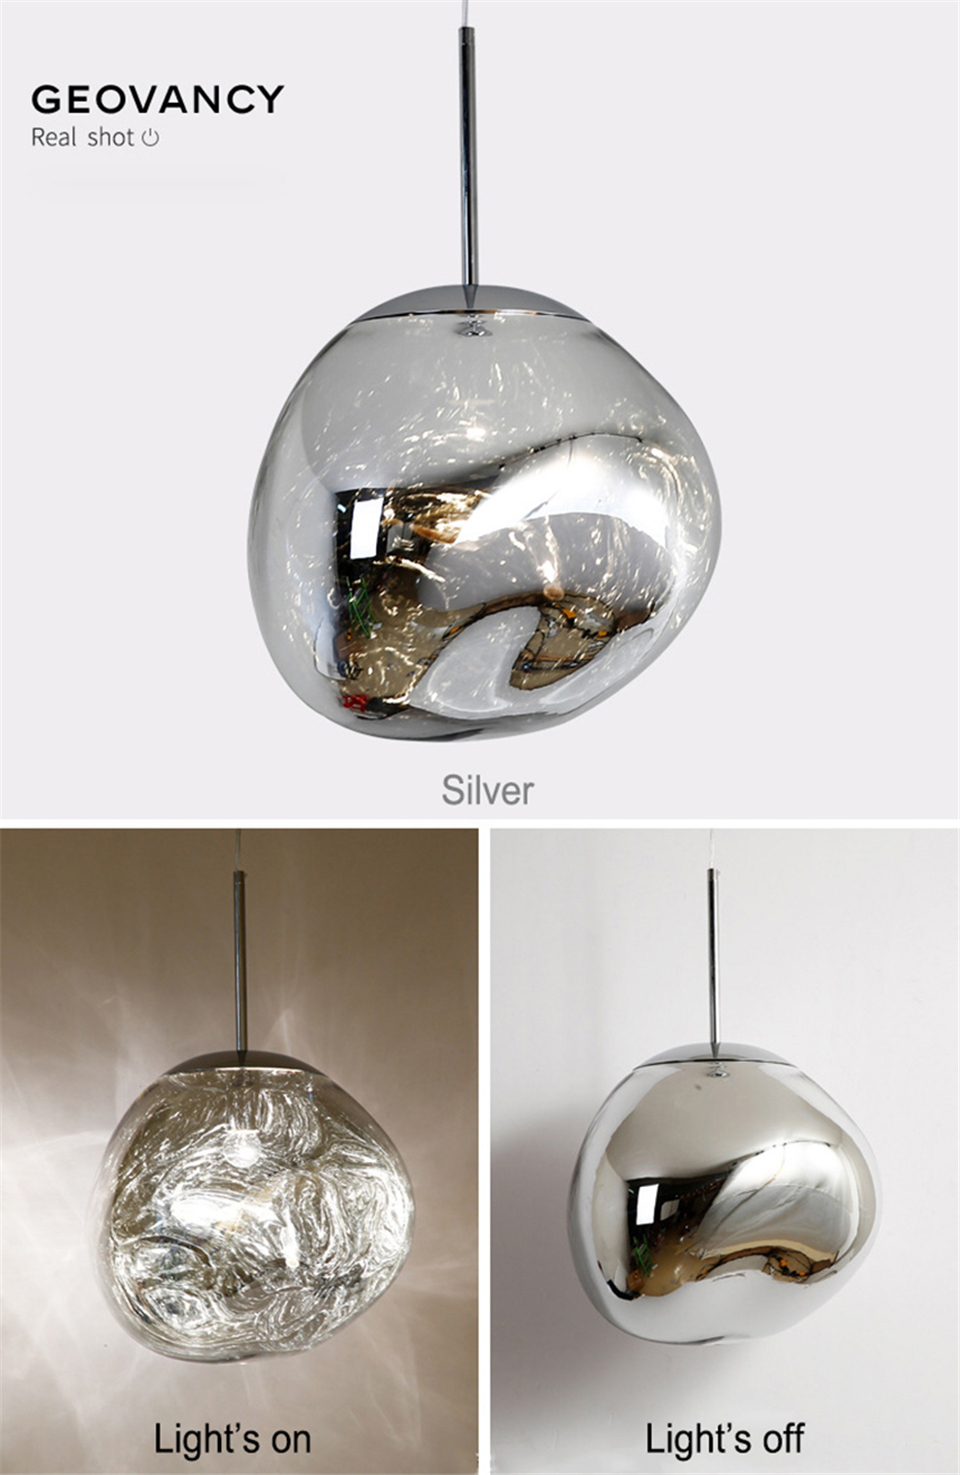 GEOVANCY Lava Pendant Lights - Silver